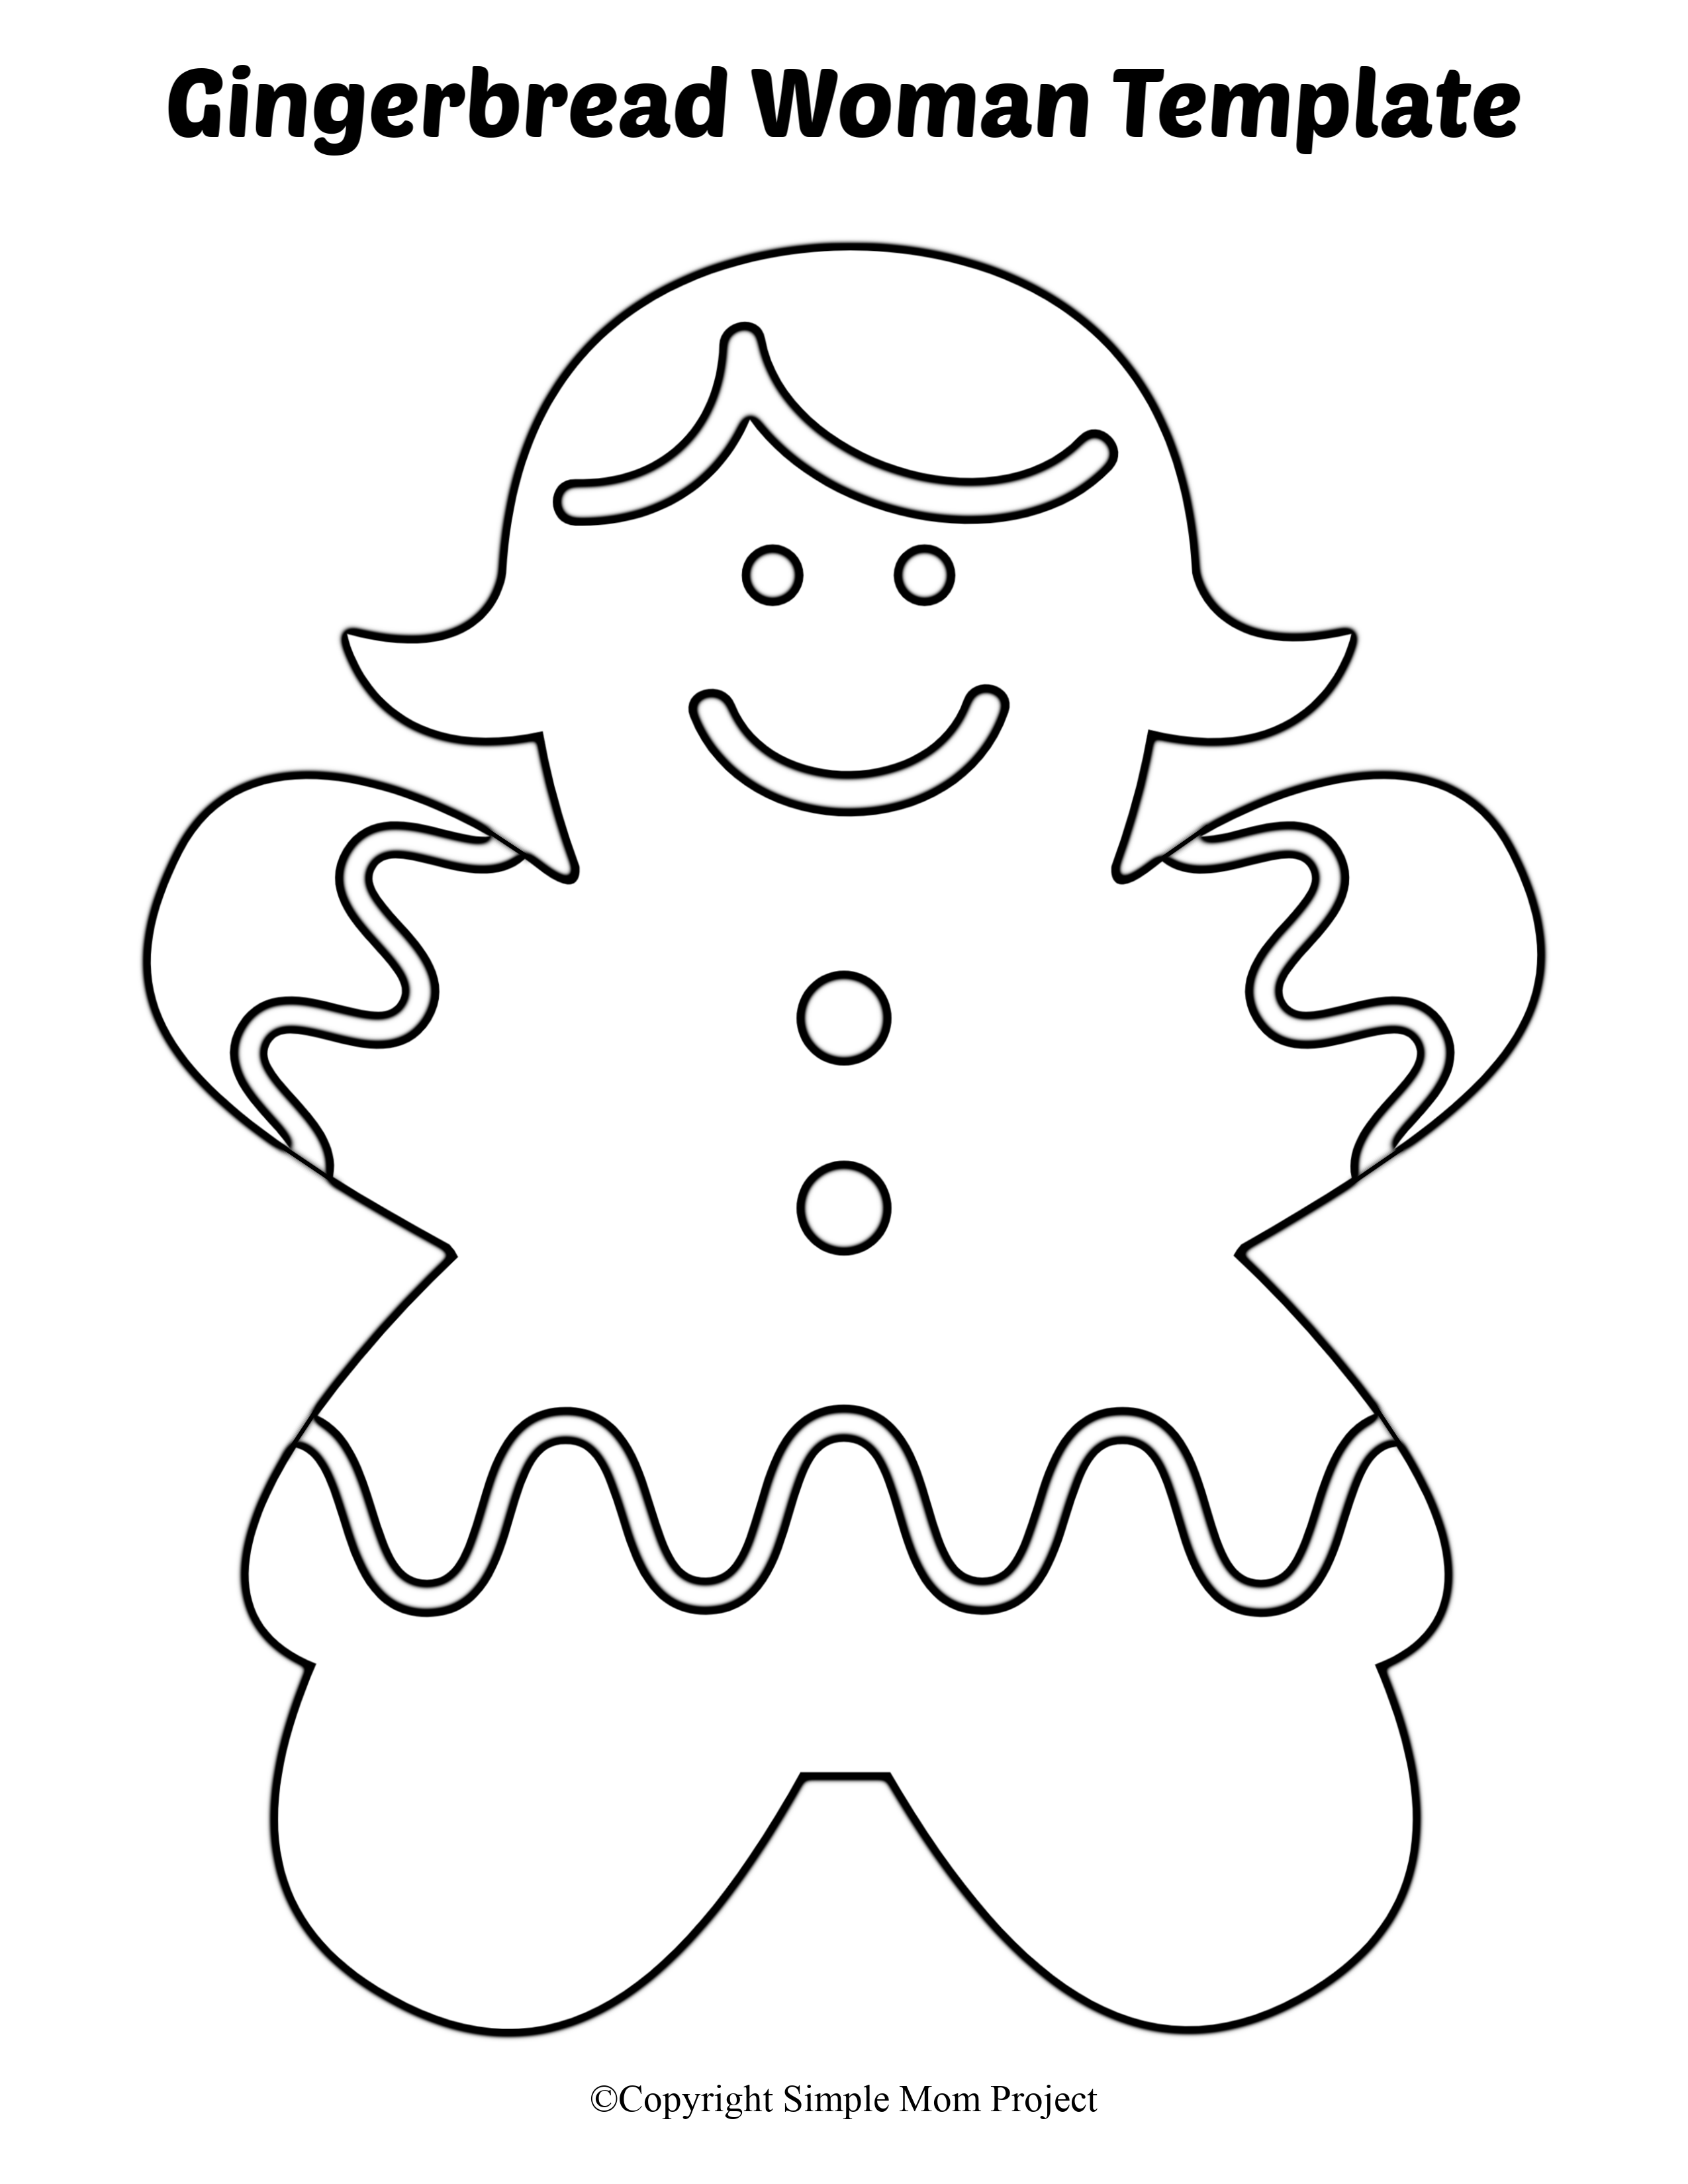 Click Now For 8 Free Printable Gingerbread Boy Gingerbread Woman And A Gingerbread Man Te Gingerbread Man Template Christmas Coloring Pages Snowflake Template